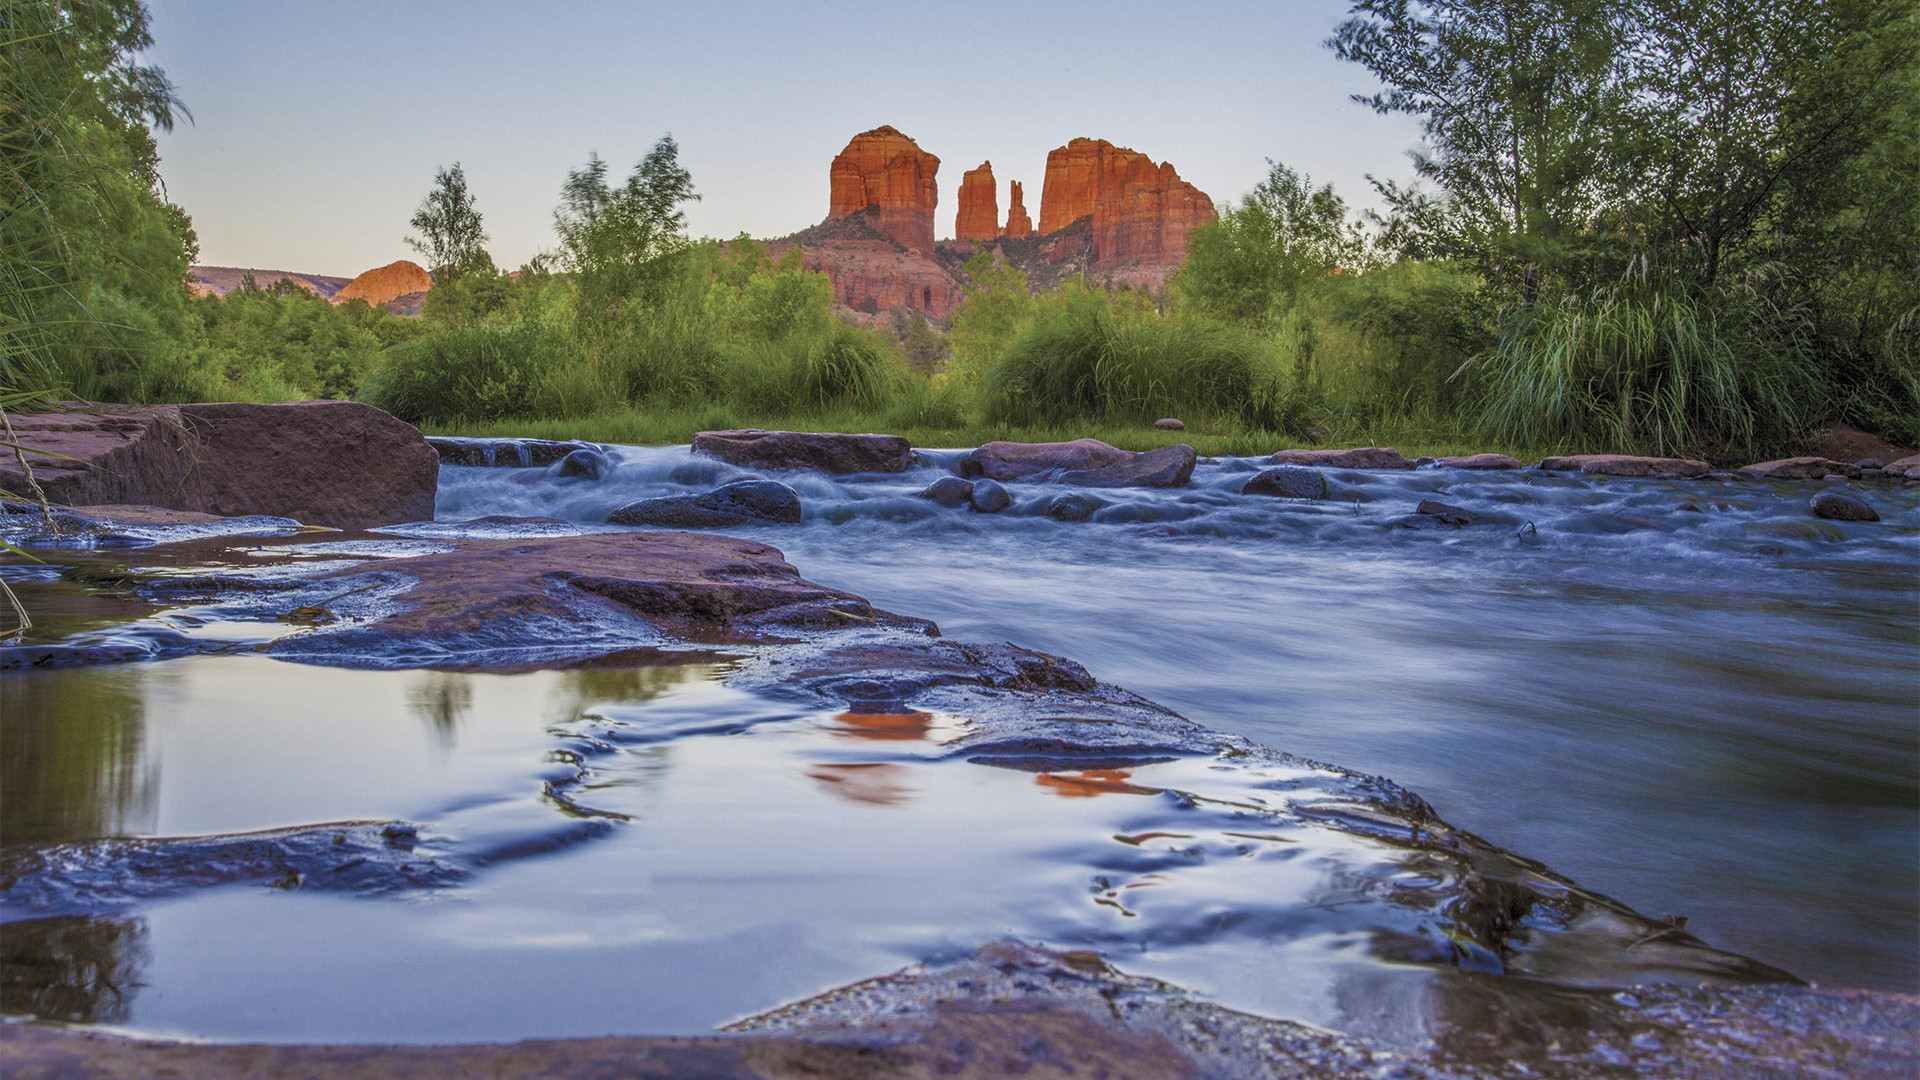 Buttes reflecting in the water outside Sedona, Arizona